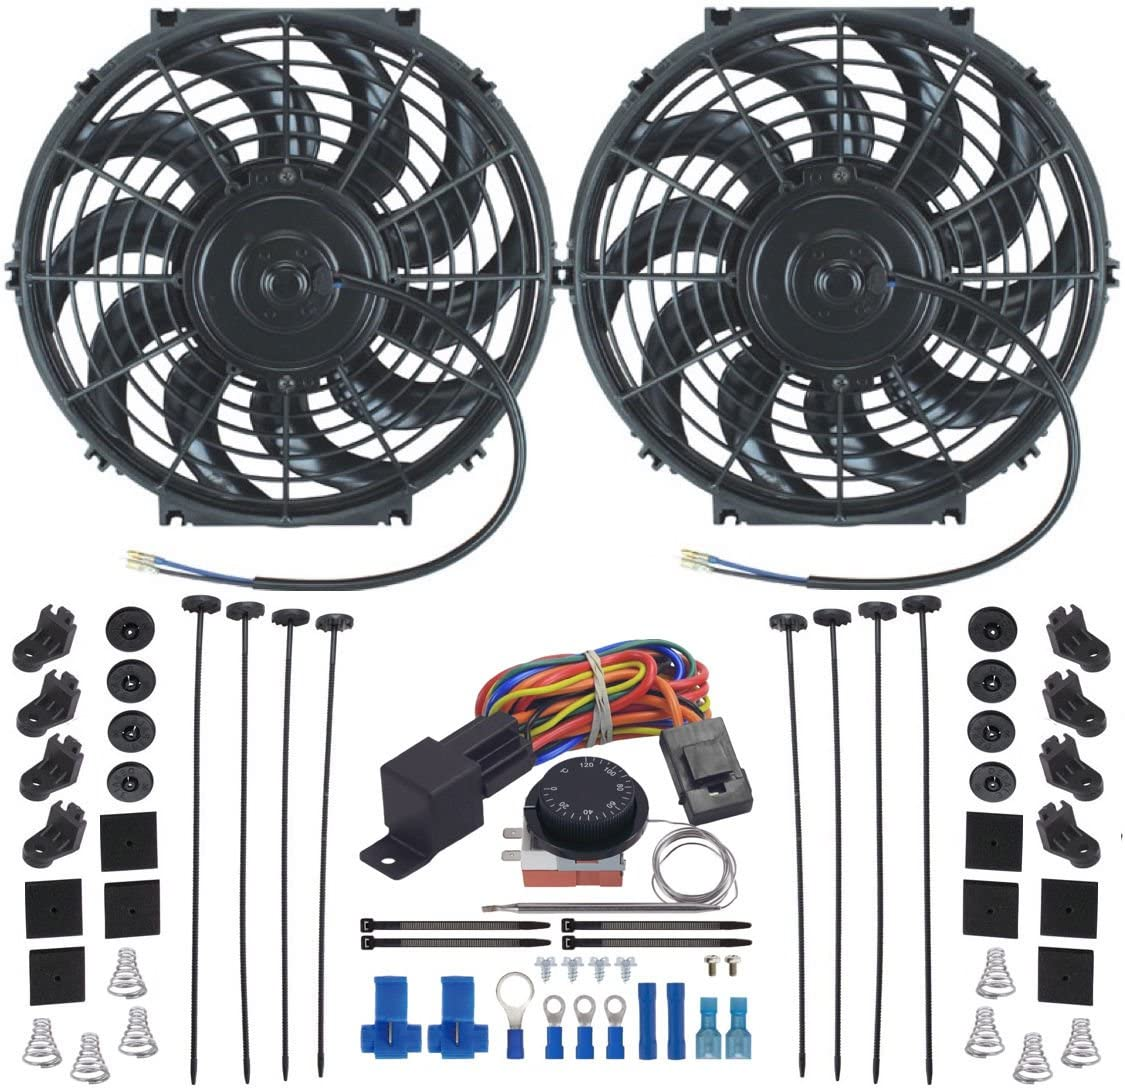 "American Volt Dual Reversible 12V Electric Engine Radiator Cooling Fan & Adjustable Thermostat Switch Kit (12"" Inch)"